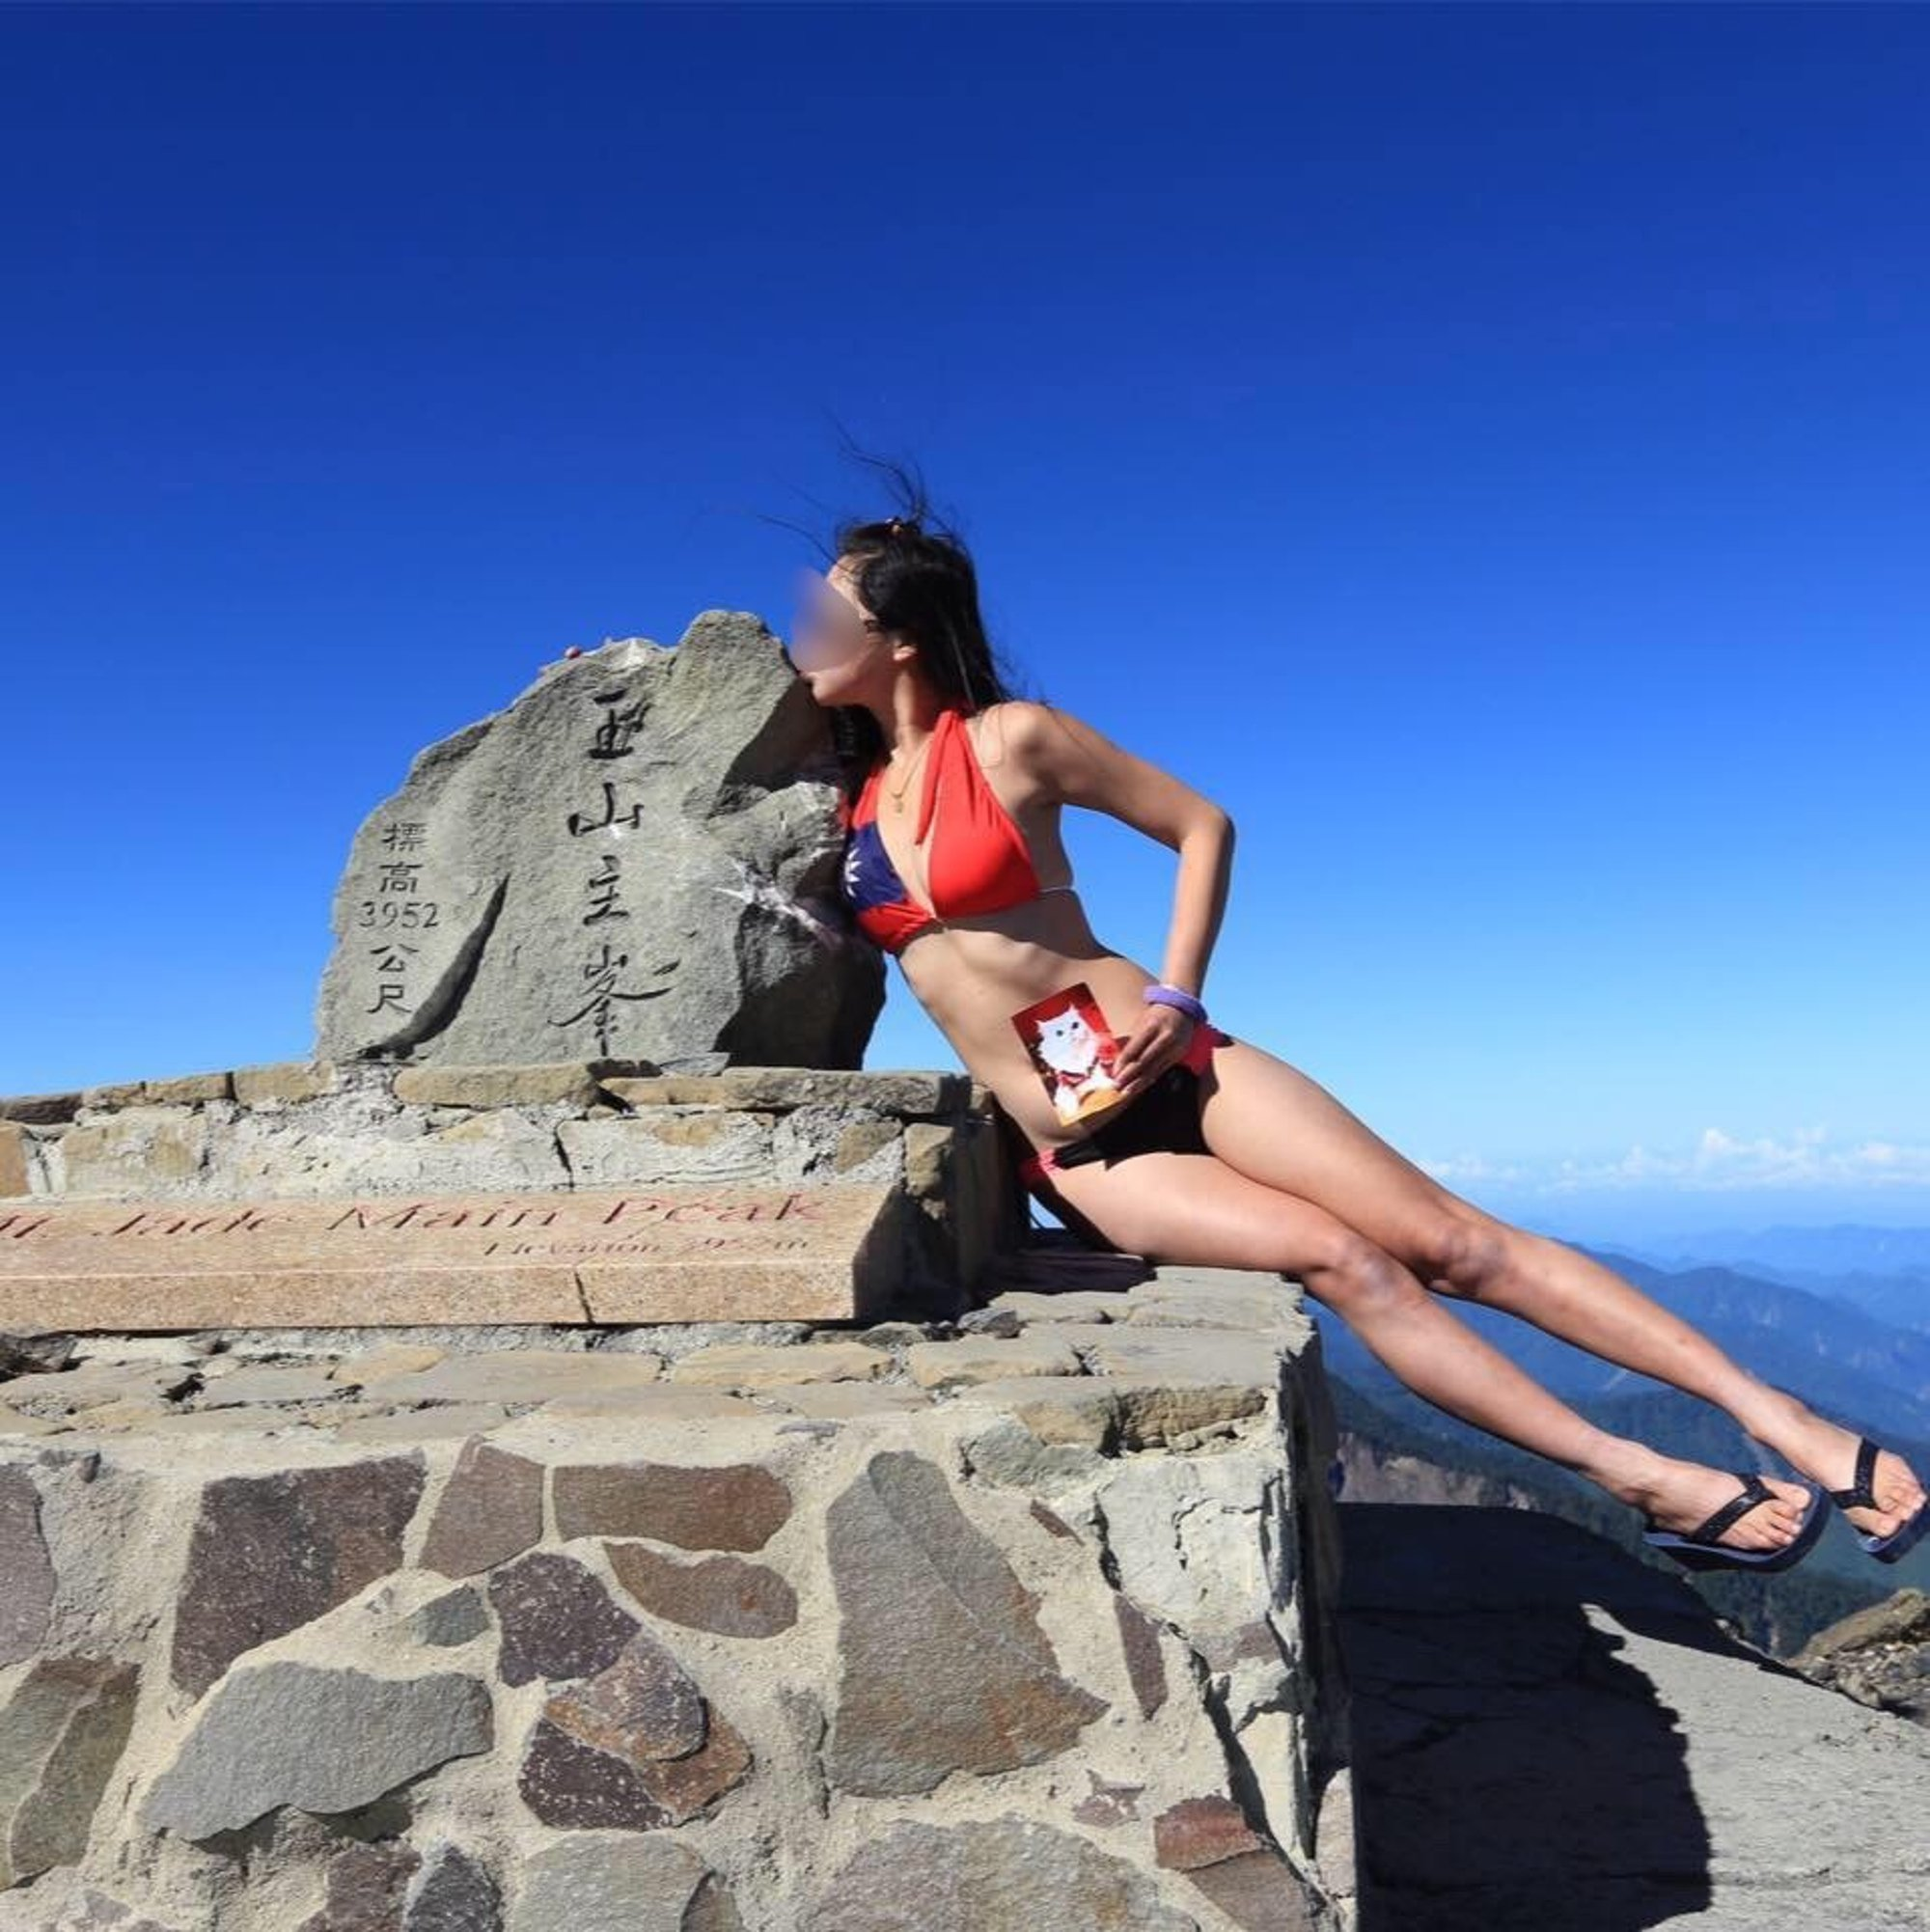 Pic shows: Gigi Wu is known for hiking in bikinis. TAIWAN: A mountaineer who was known for hiking in bikinis has tragically frozen to death while awaiting rescue following a 65-foot plunge into ravine and a satellite-phone call for help.